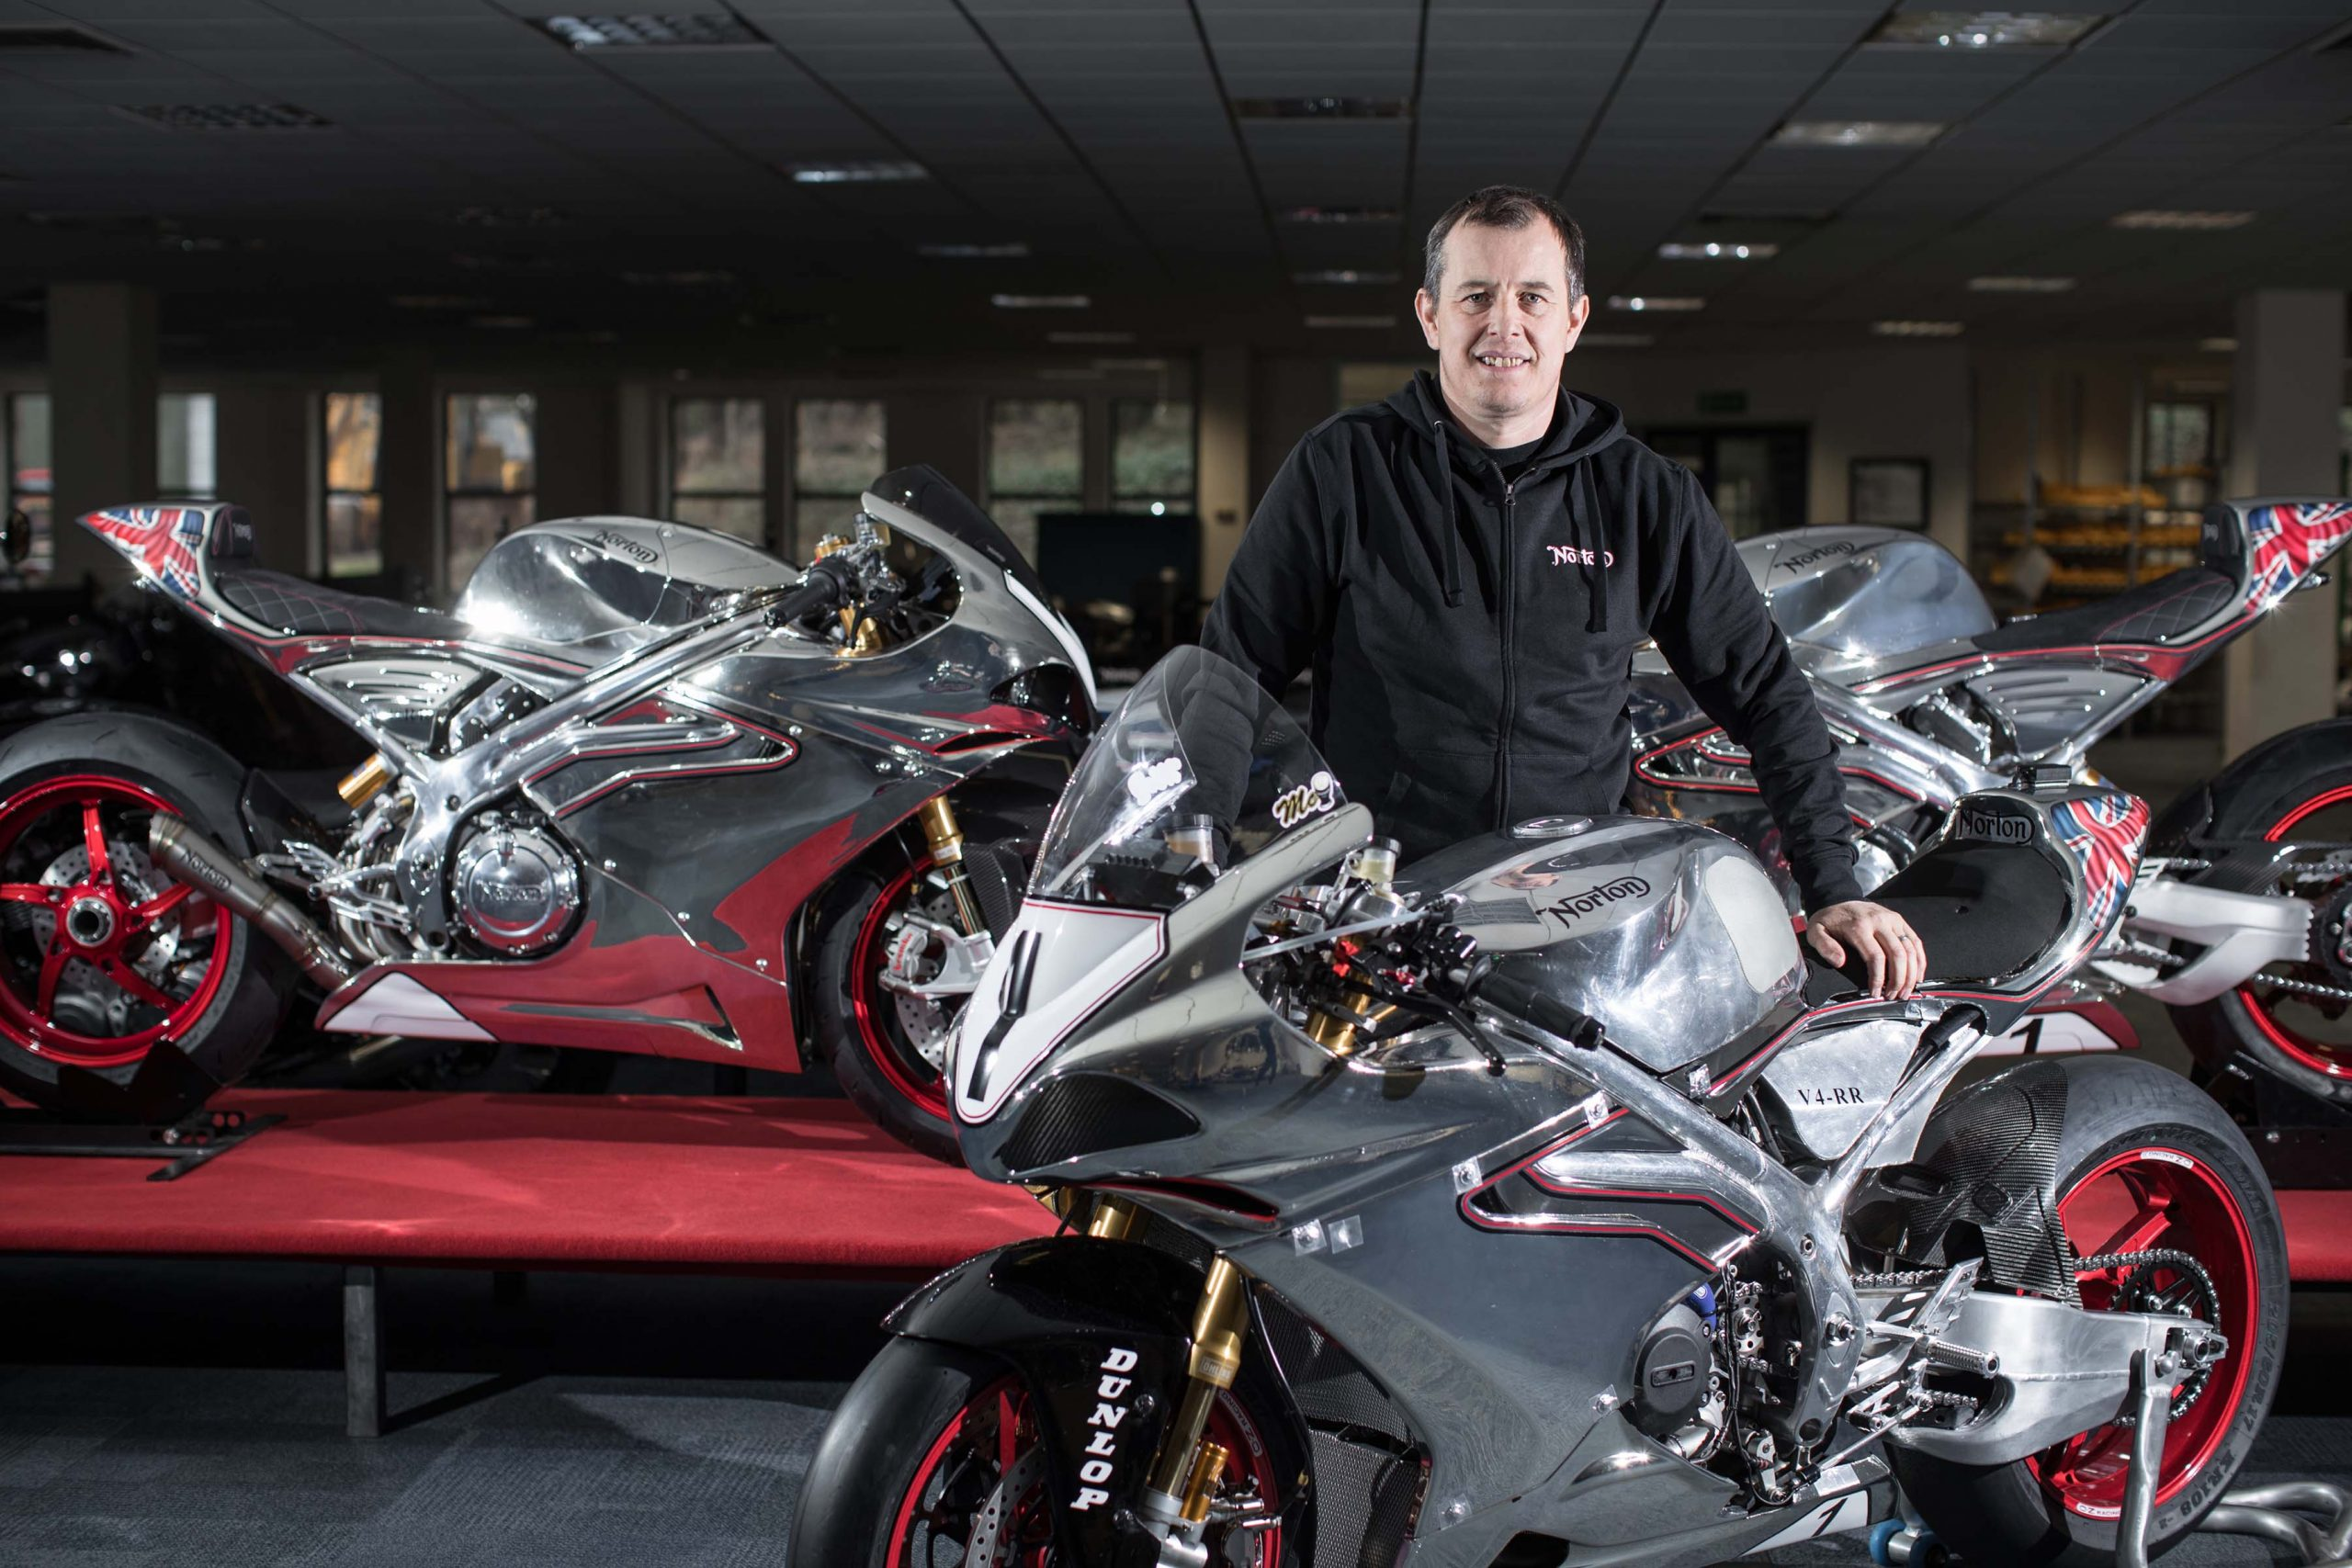 Norton sauce curry John-McGuinness-Norton-SG7-Isle-of-Man-TT-04-scaled